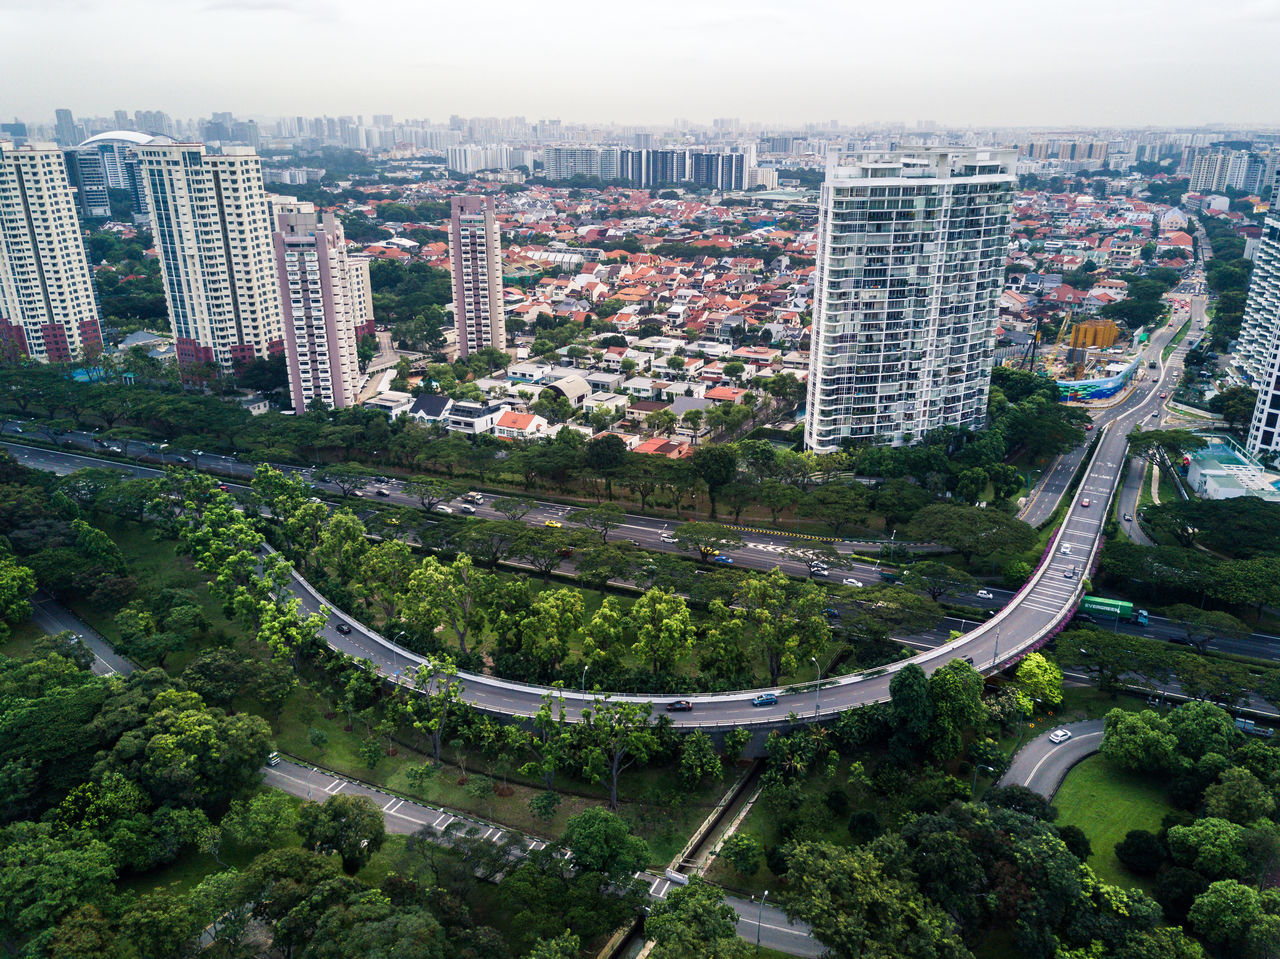 Aerial View Architecture ASIA Building Exterior Built Structure City Cityscape Day Drone  Dronephotography High Angle View Highway Modern No People Outdoors Road Singapore Sky Skyscraper Tree Urban Urban Geometry